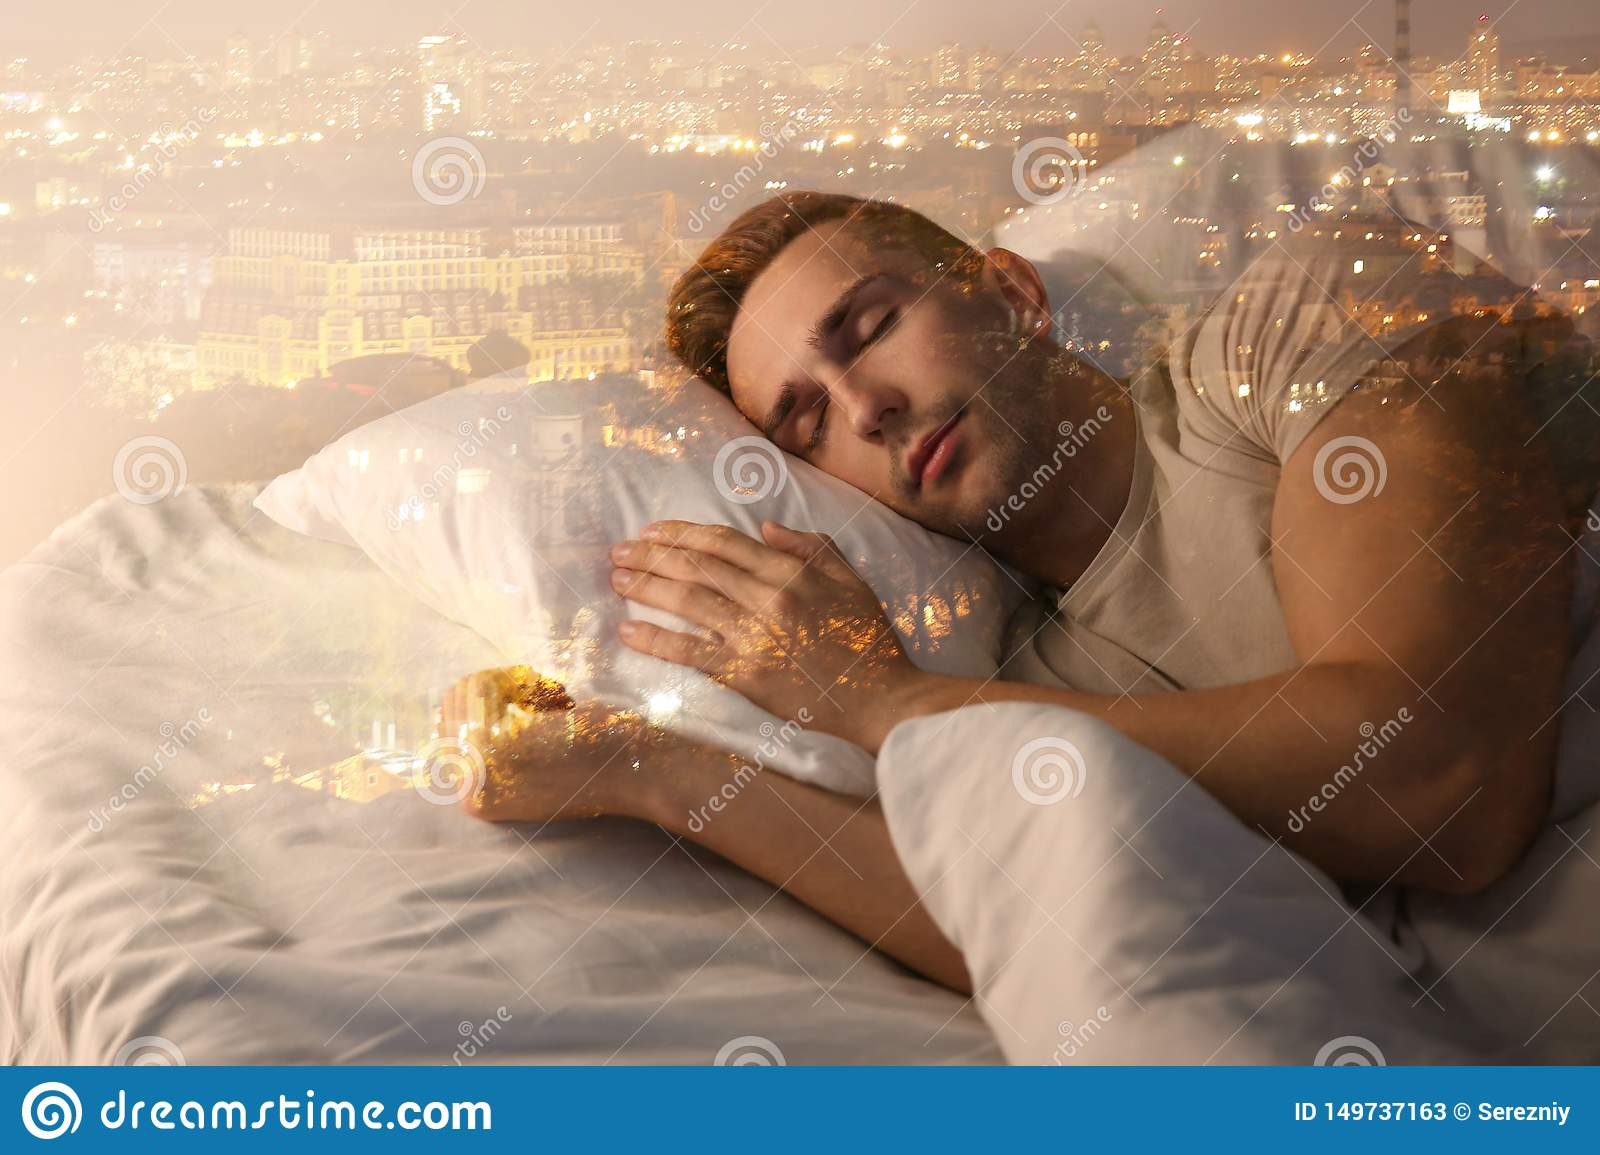 Young Man Sleeping On Side In Bed At Night Stock Photo ...   Man Sleeping In Bed At Night